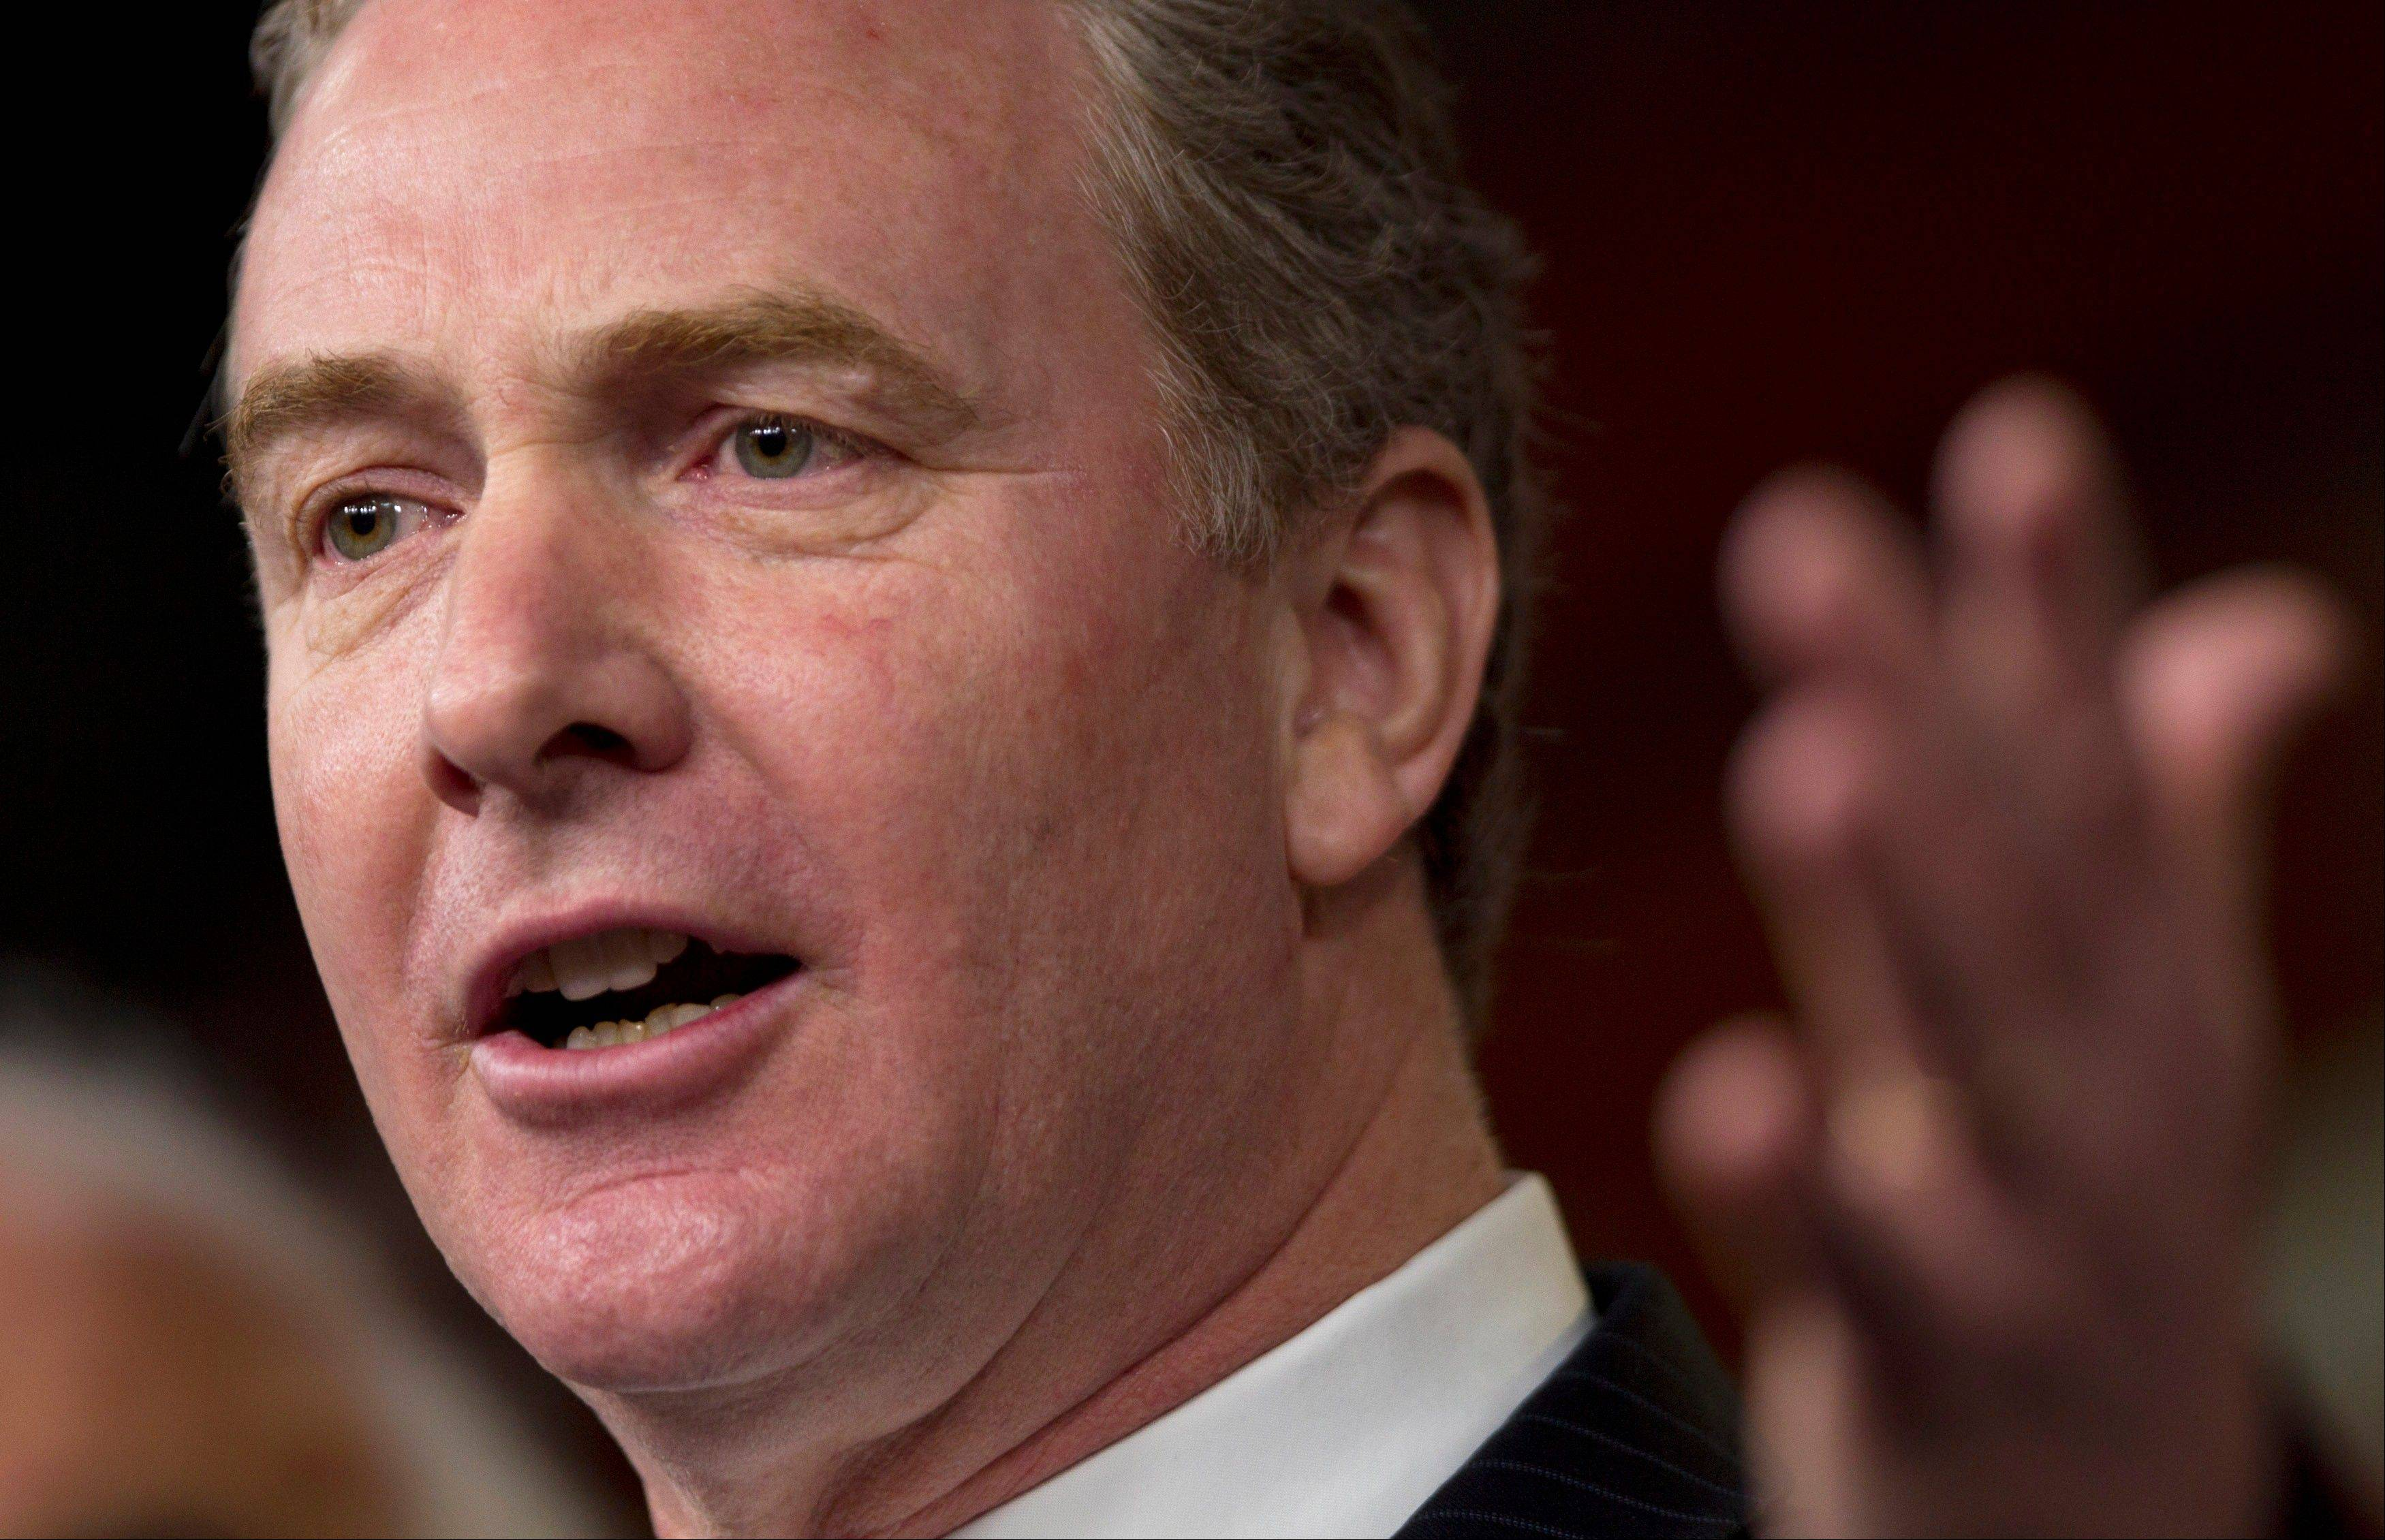 Rep. Chris Van Hollen, ranking Democrat on the House Budget Committee, says Republicans� �obsession with small changes in tax rates goes back to this pixie-dust theory that if you cut tax rates for wealthy people, it pays for itself� through job creation. �That theory went bust,� he said.